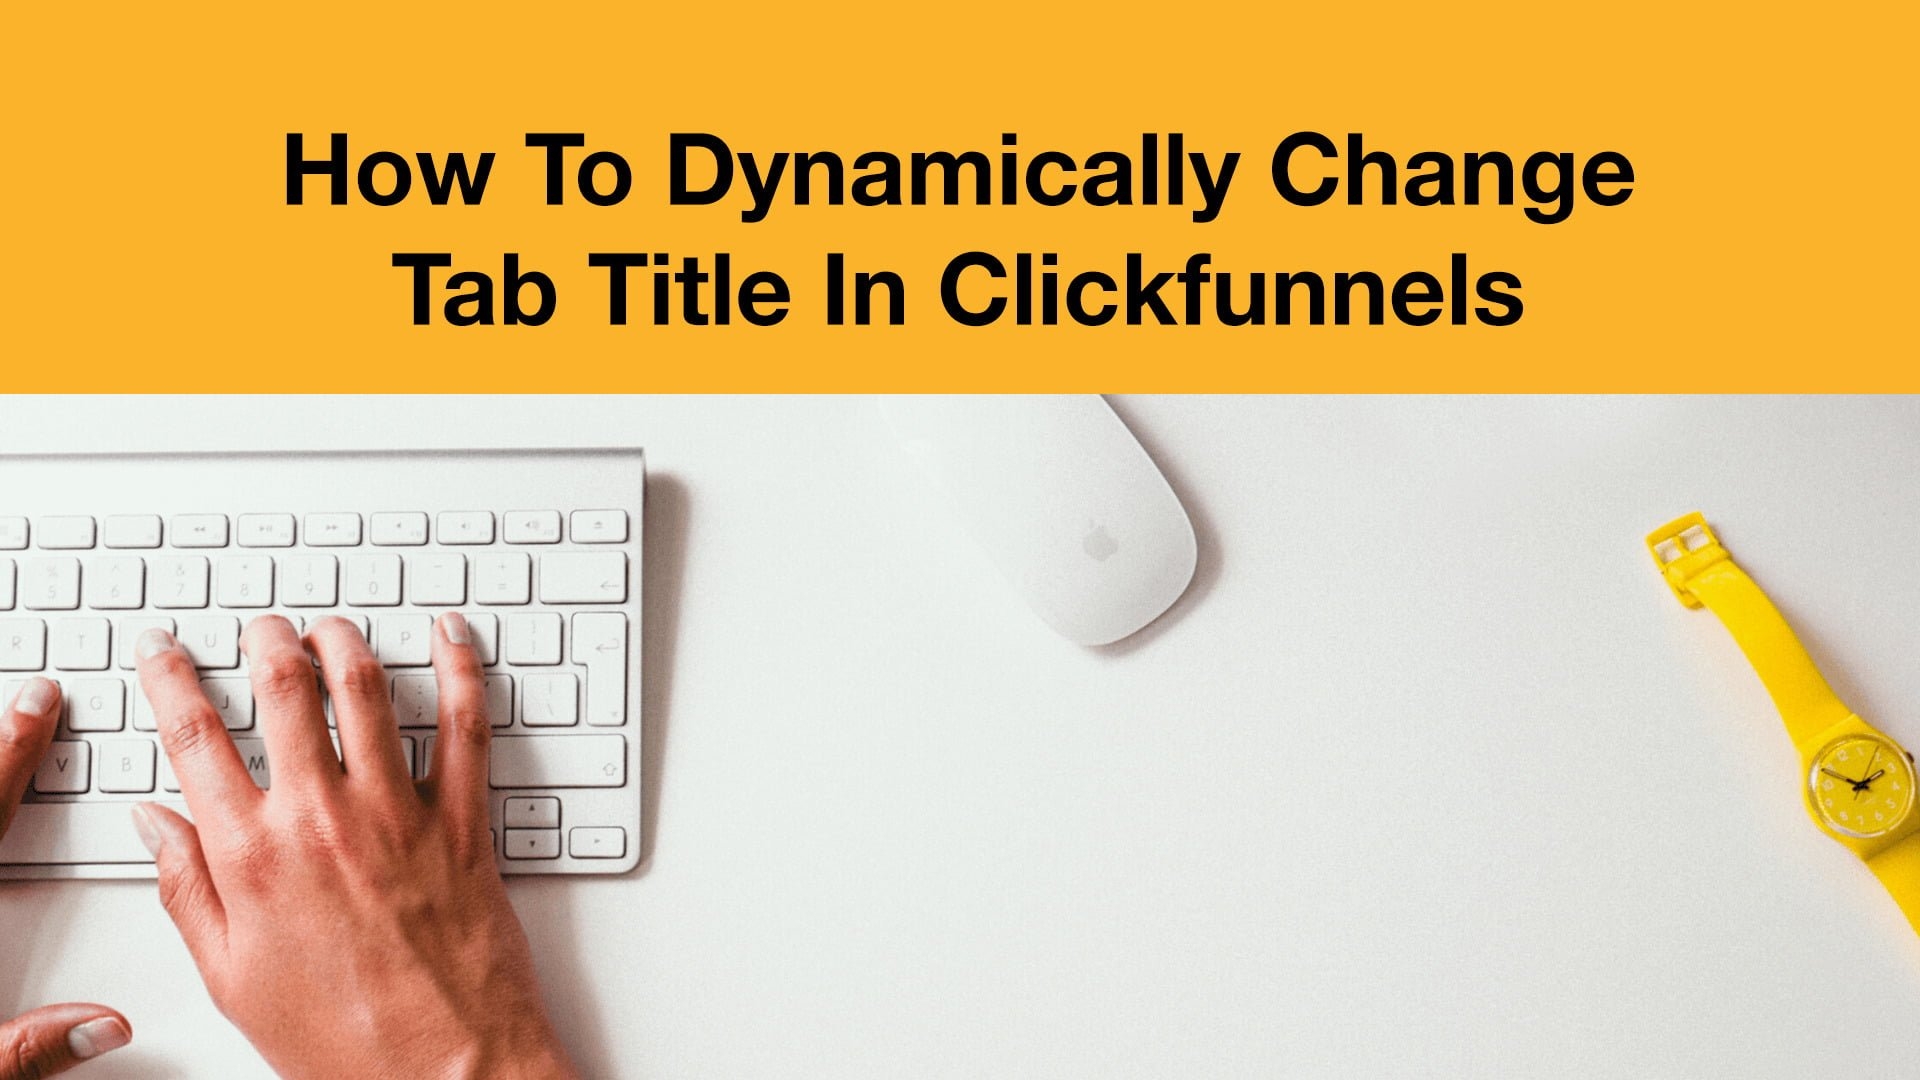 How To Change Tab Title In Clickfunnels